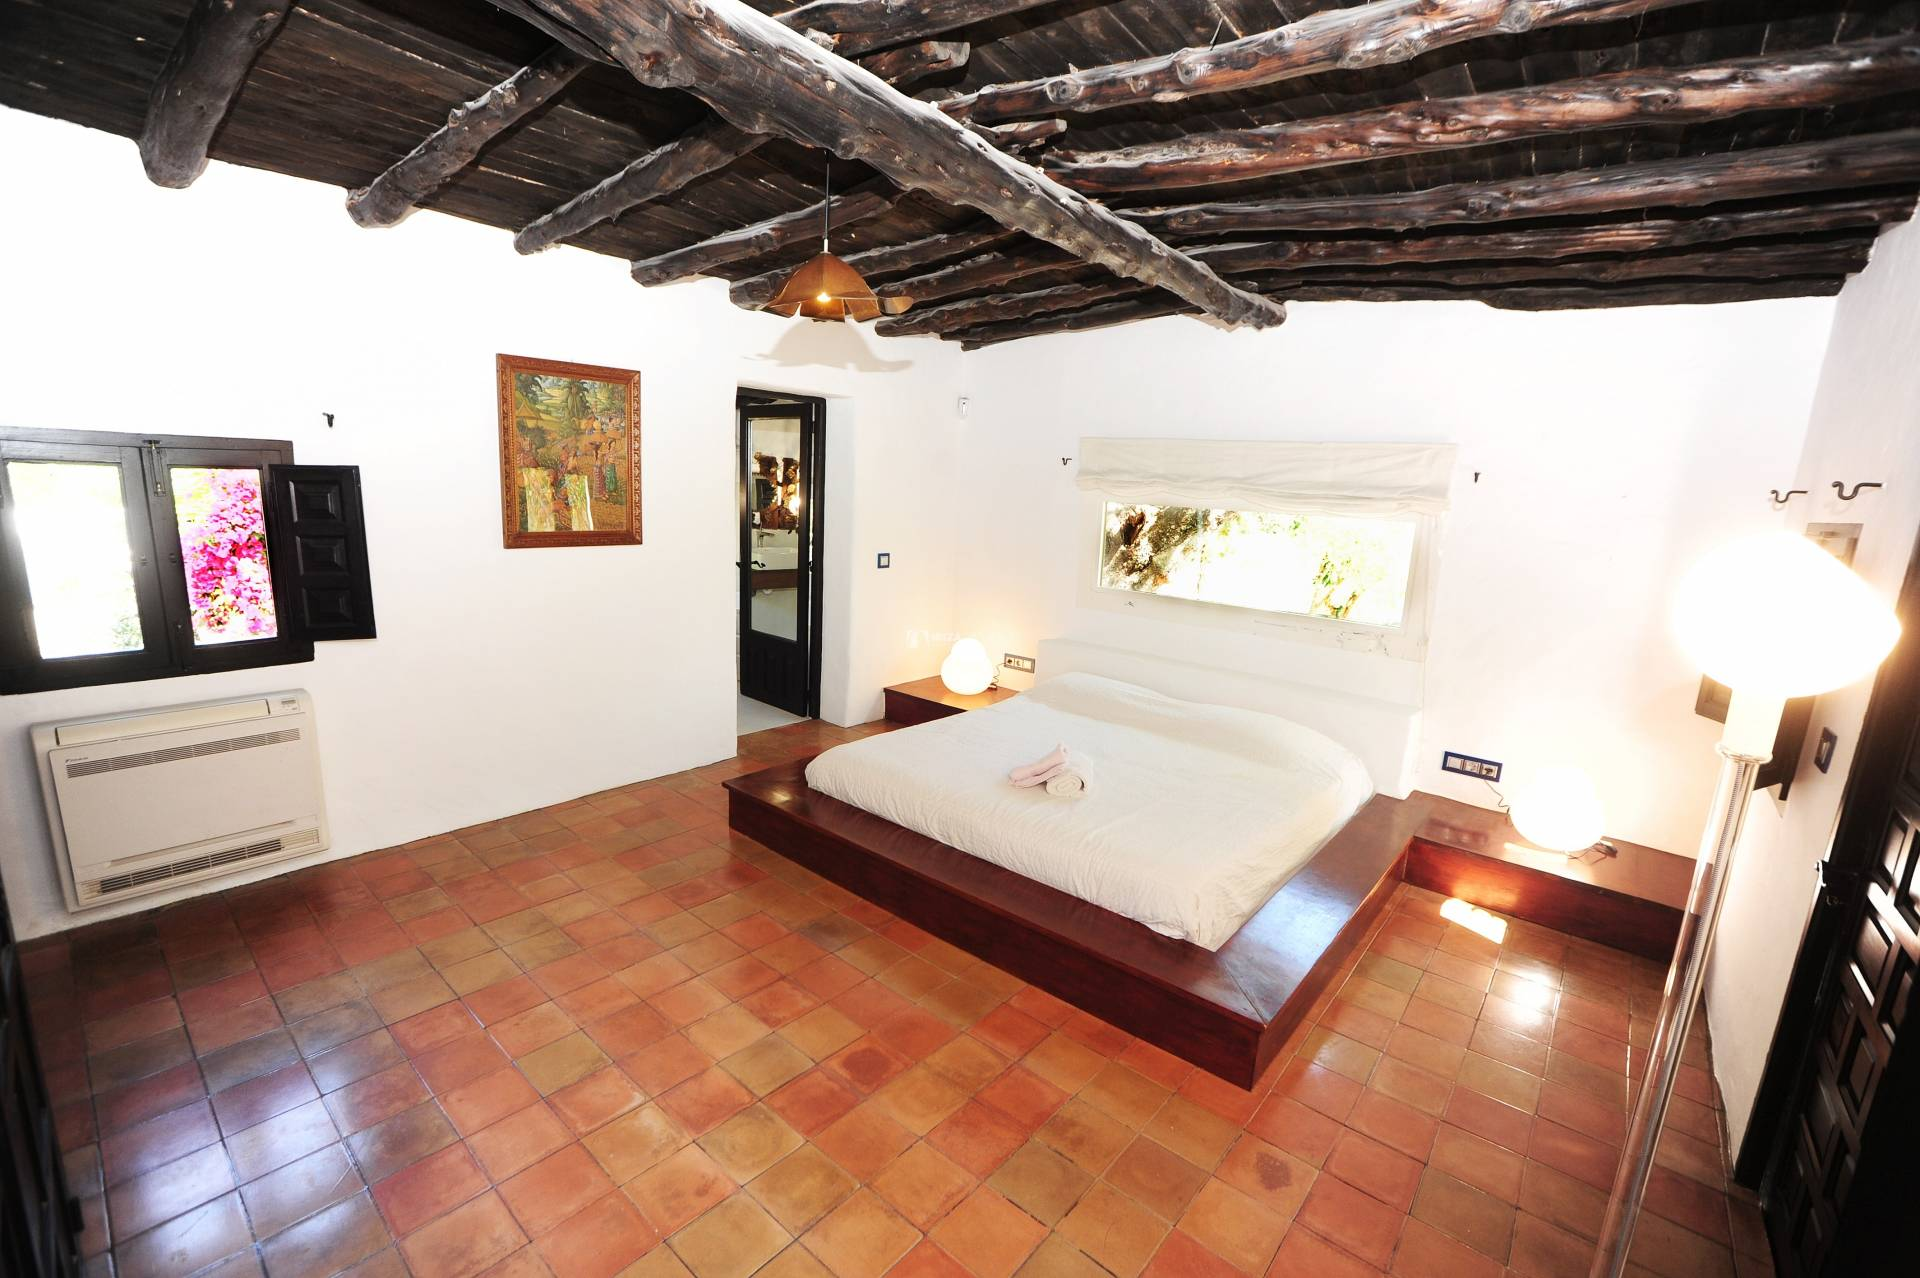 6 Bedrooms Villa in San Rafael to rent perspectiva 7